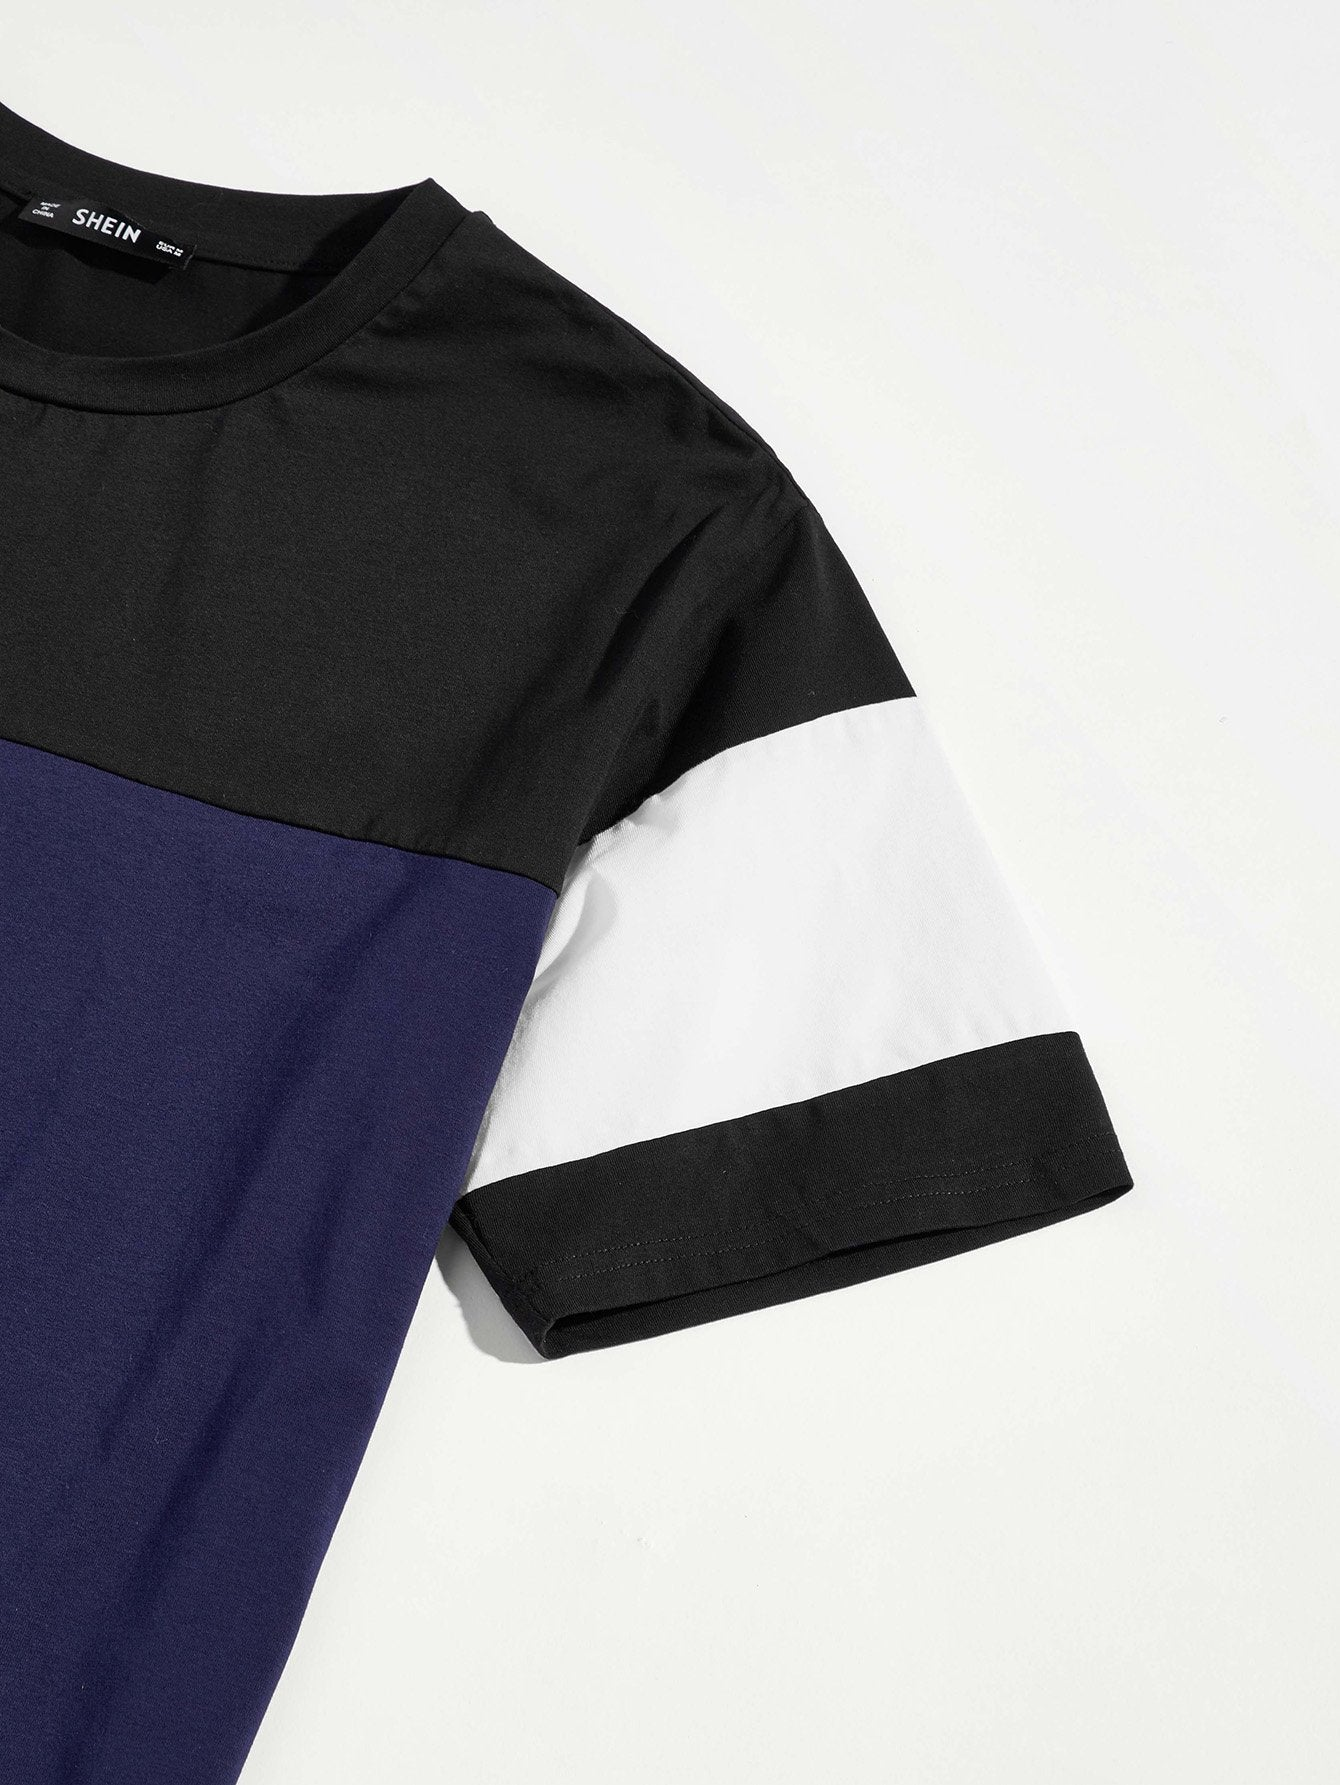 Men Cut and Sew Short Sleeve Tee - mroutfit